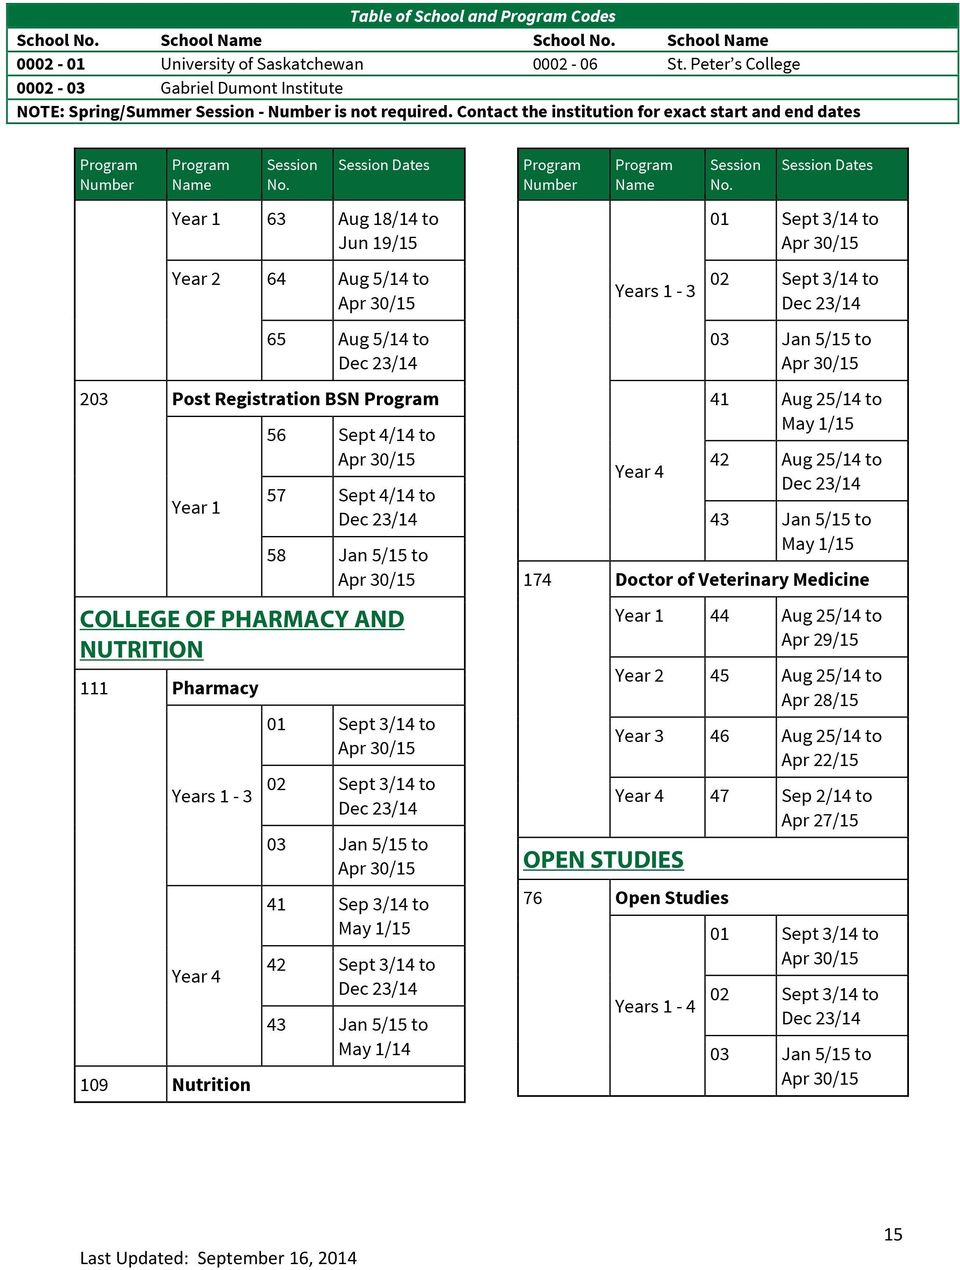 COLLEGE OF PHARMACY AND NUTRITION 111 Pharmacy Years 1-3 Year 4 109 Nutrition 41 Sep 3/14 to 42 Sept 3/14 to 43 Jan 5/15 to May 1/14 Years 1-3 Year 4 41 Aug 25/14 to 42 Aug 25/14 to 43 Jan